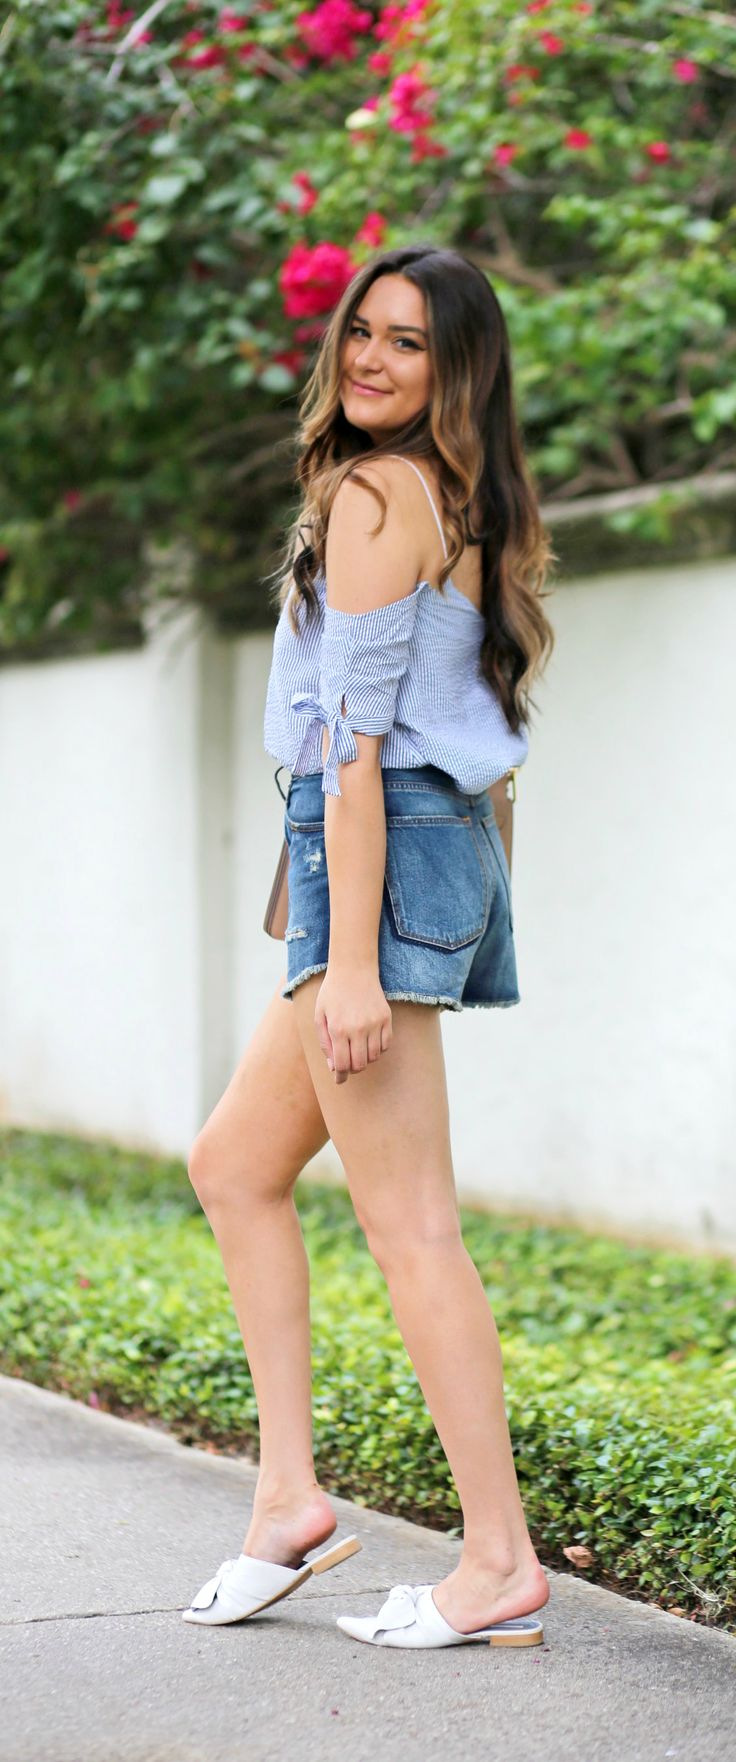 The bows on this top though!! | Fashion blogger Mash Elle styles a blue striped seersucker off the shoulder top from Urban Outfitters  with high waisted cut off ripped jeans short from Abercrombie and Fitch shorts, Michael Hill watch, and Chloe Faye purse.